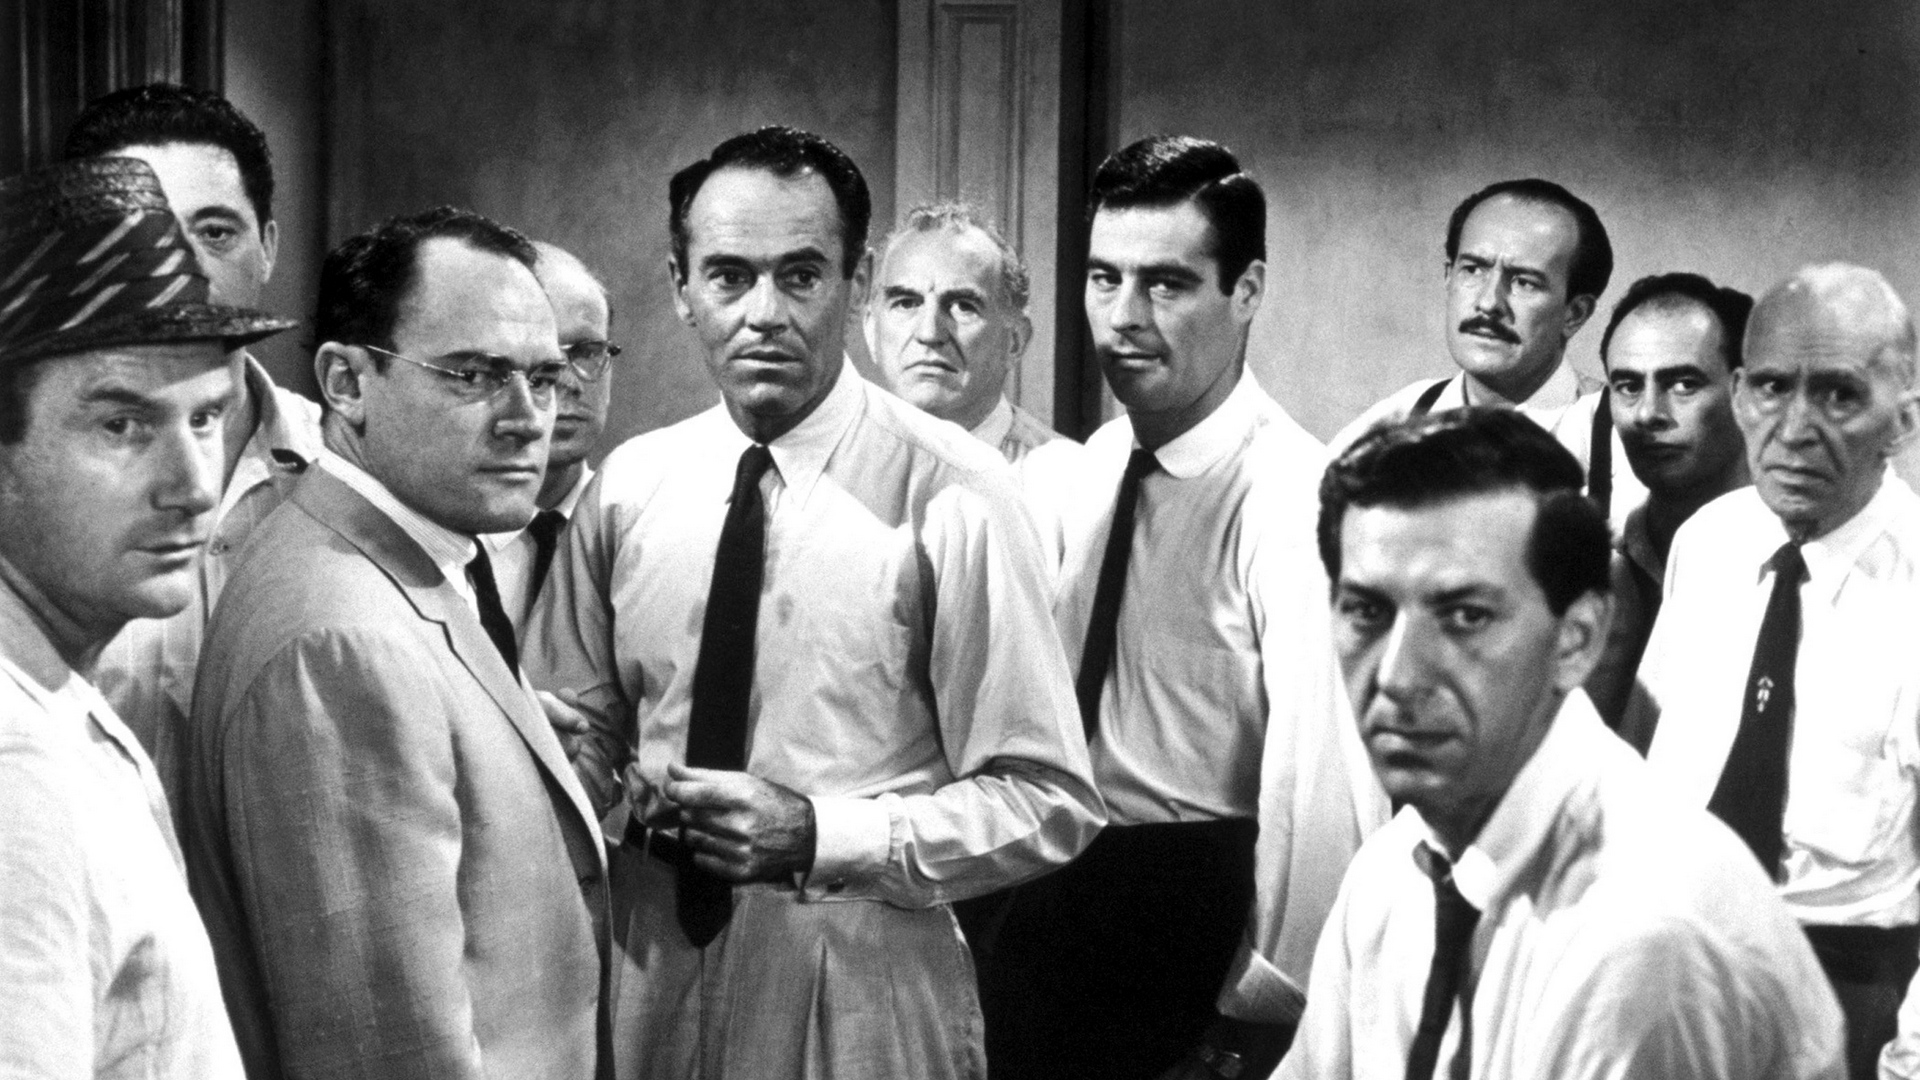 Download wallpaper 1920x1080 12 angry men men actors black 1920x1080